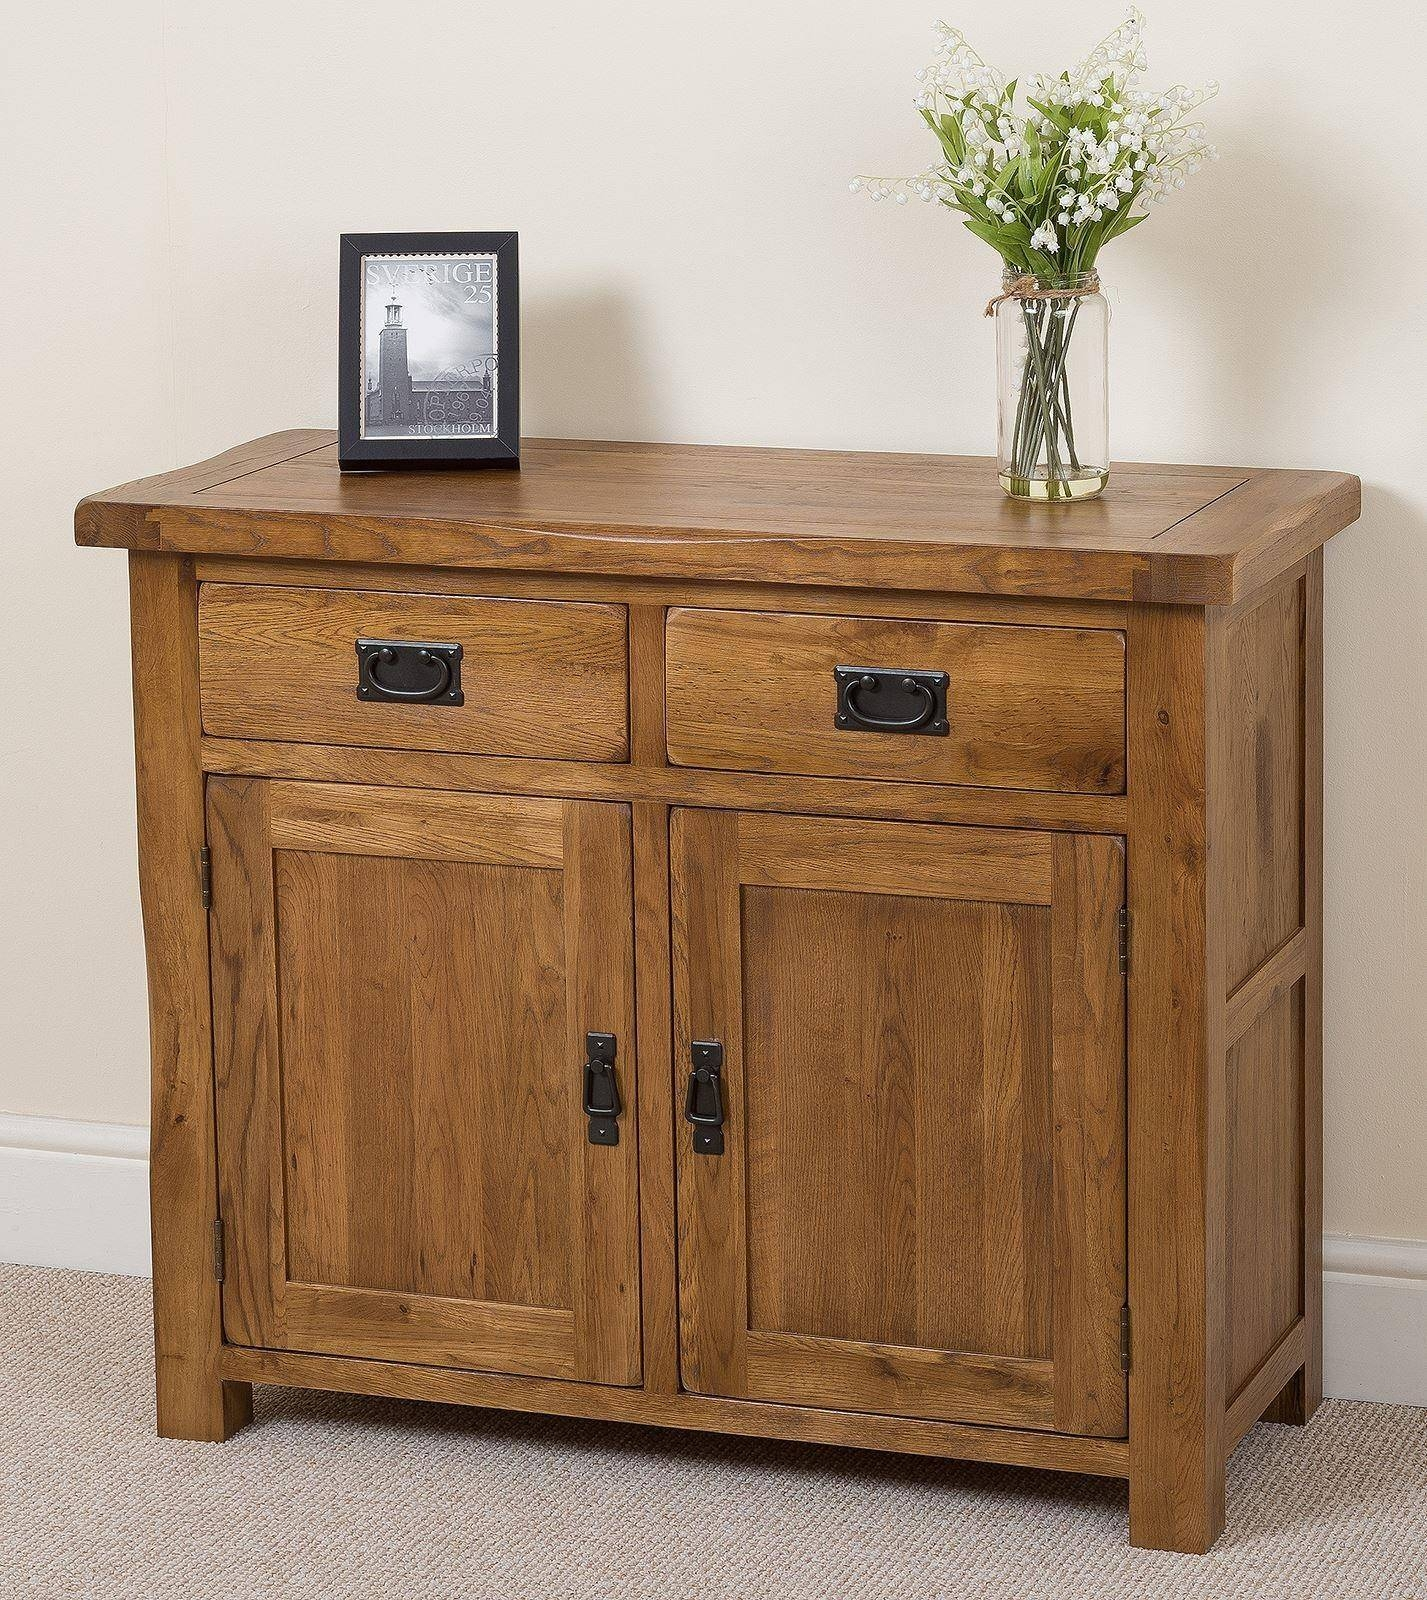 Cotswold Rustic Small Oak Sideboard | Free Uk Delivery Throughout Solid Wood Sideboards (View 6 of 15)